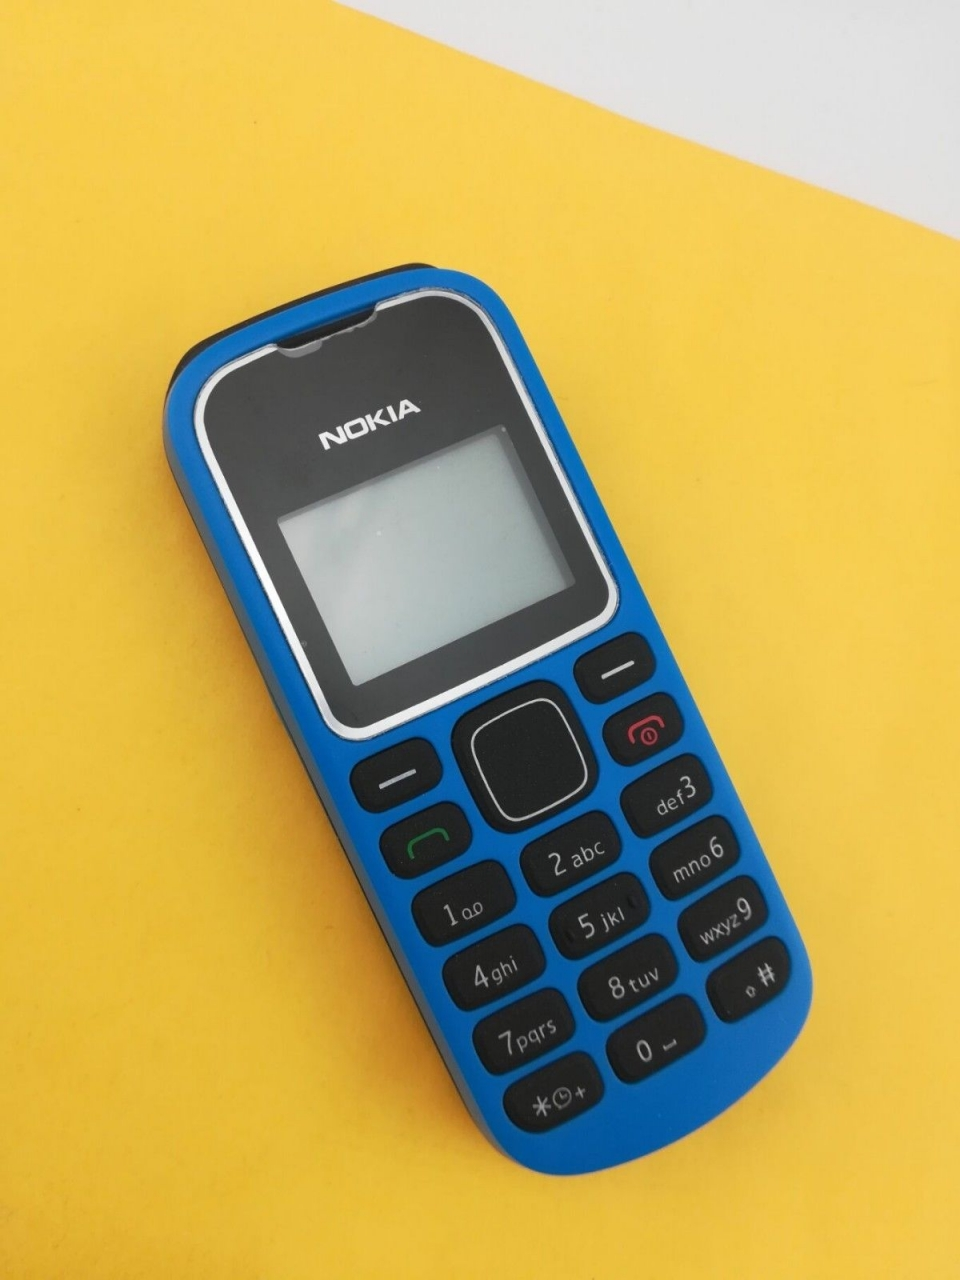 Refurbished phone mobile phone Nokia 1280 Unlocked Wholesale 1280 GSM Cheap Cell phone blue 9